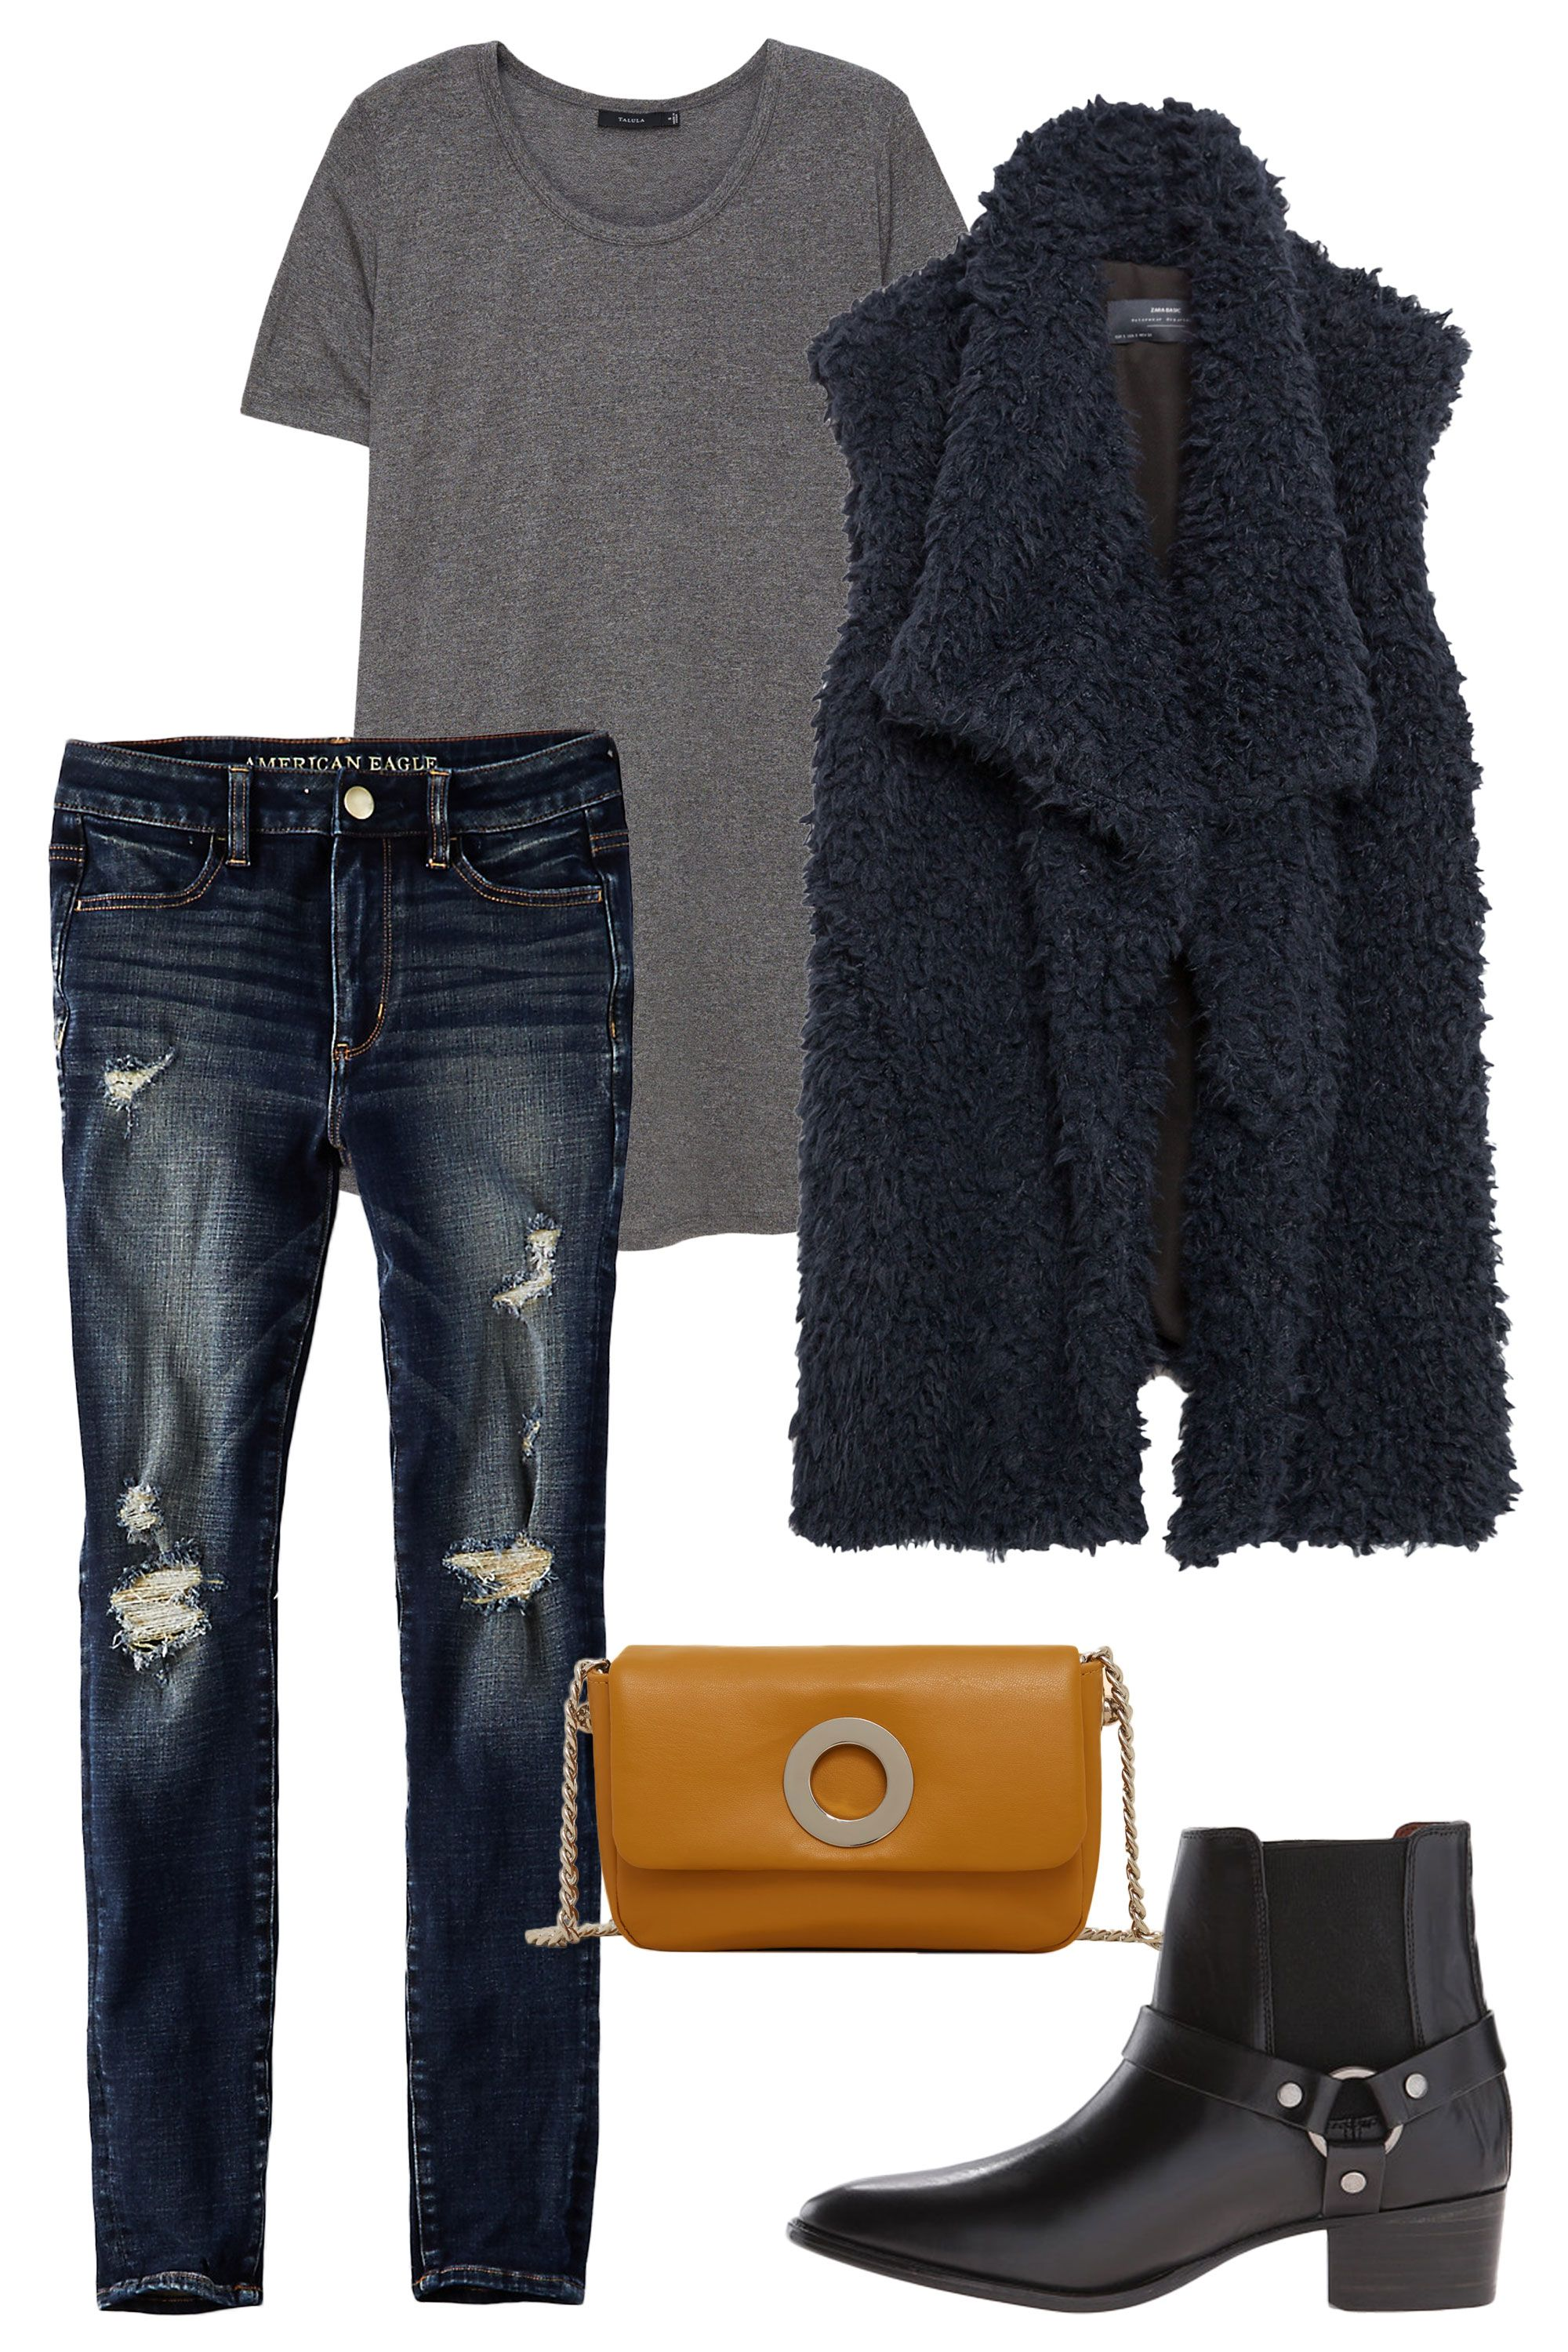 "<p>Layering never goes out of style, and this cozy AF vest will keep you warm as the weather transitions from muggy to chilly. Booties always pair nicely with distressed denim, and a mustard-color bag shows you've got that whole '70s-inspired trend on lock. </p><p><em><em> <a href=""https://www.ae.com/women-aeo-denim-x4-hi-rise-jegging-indigo-rust-destroy/web/s-prod/0433_9641_907?cm=sUS-cUSD"" target=""_blank"">AEO X4 Hi-Rise Jegging</a>, American Eagle, $49.95</em>; <a href=""http://us.aritzia.com/product/bilbao-t-shirt/55612.html?dwvar_55612_color=6434"" target=""_blank"">Bilbao T-Shirt</a>, Talula (Available at Aritzia), $45; <a href=""http://www.zara.com/us/en/woman/sale/outerwear/faux-fur-waistcoat-c437584p3213590.html"" target=""_blank"">Faux Fur Waist Coat</a>, ZARA, $69.90; <a href=""http://www.zappos.com/frye-dara-harness-chelsea-black-smooth-veg-calf"" target=""_blank"">Dara Harness Bootie</a>, Frye (Available at Zappos), $348; <a href=""http://shop.mango.com/US/p0/women/accessories/bags/crossbody-bags/chain-bag/?id=73080131_15&n=1&s=accesorios.bolsos"" target=""_blank"">Chain Bag</a>, Mango, $39.99</em></p>"